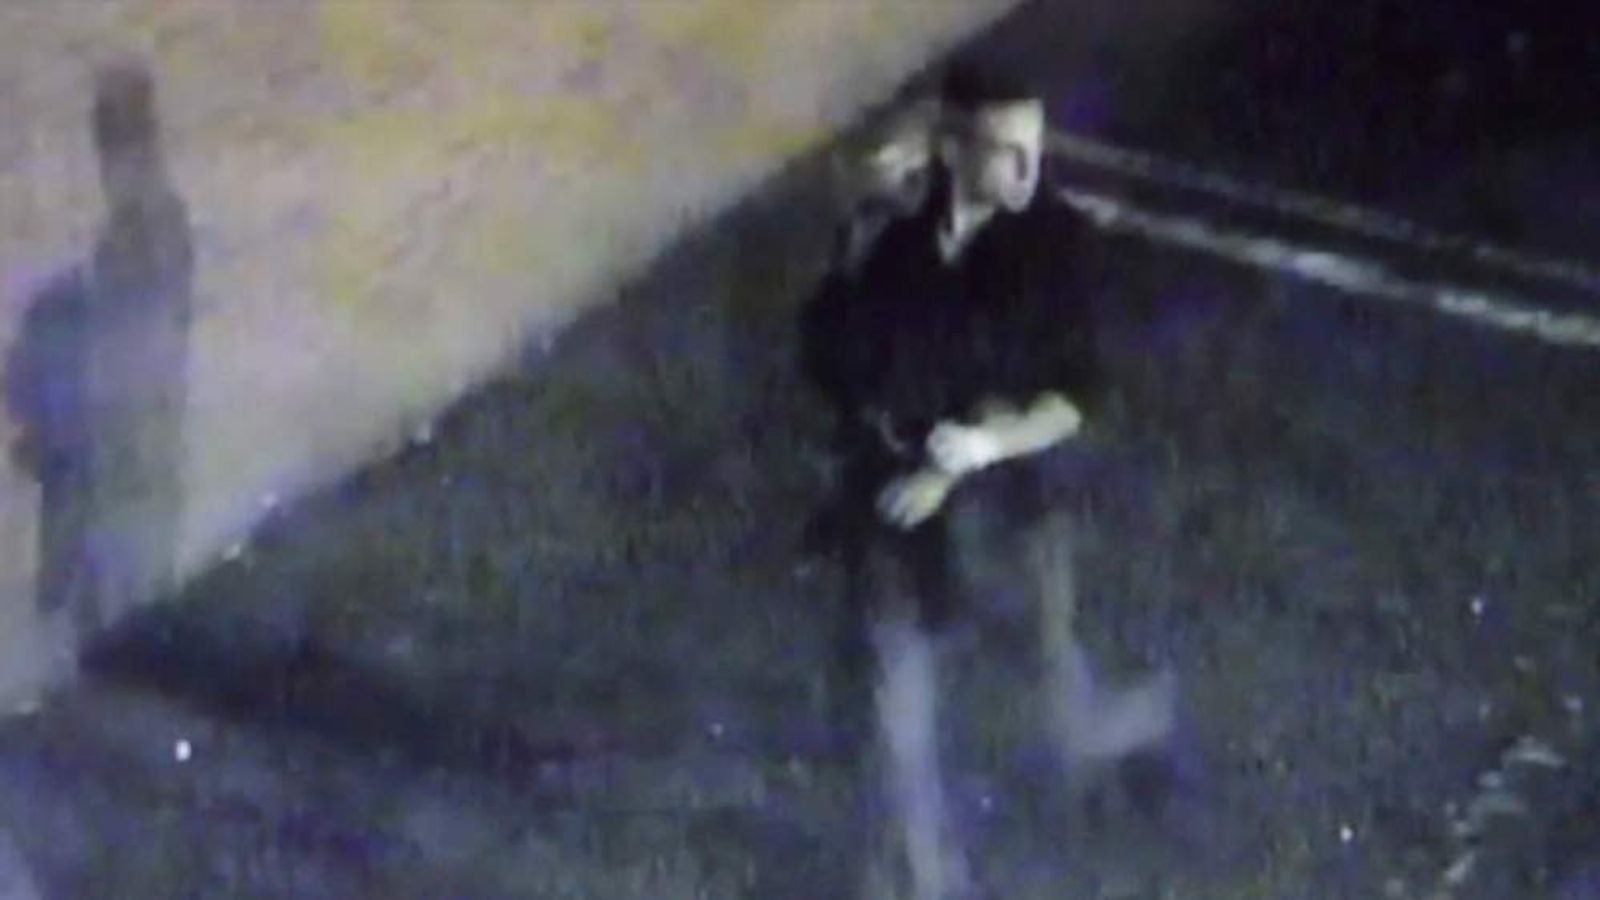 The wanted suspect is seen removing his gloves in CCTV footage